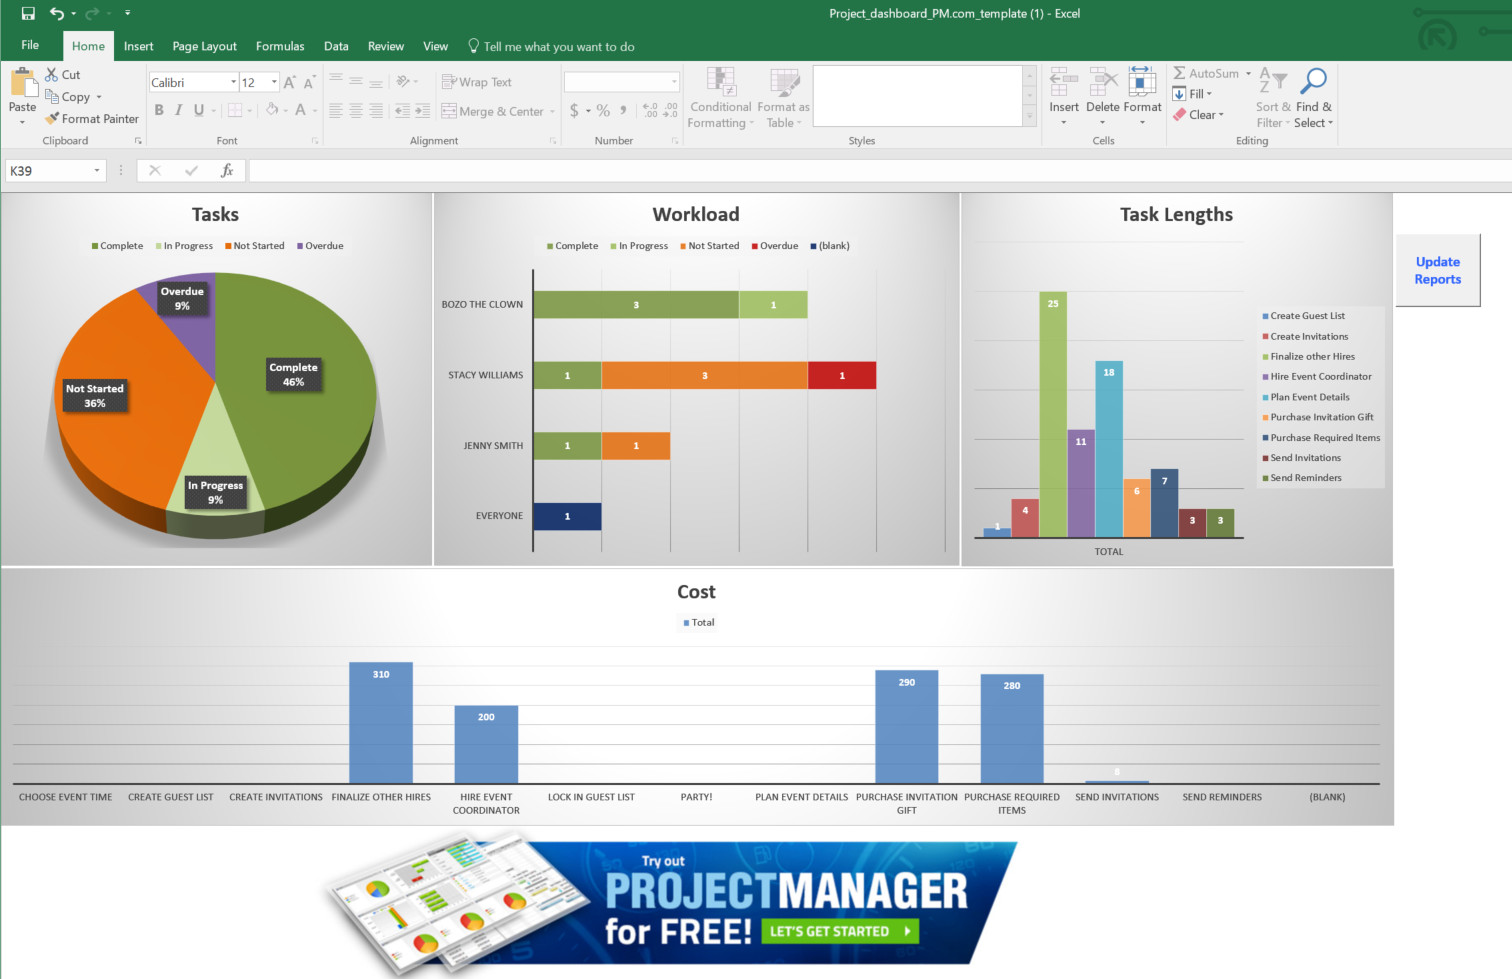 Blank Project Dashboard Template Excel Free In Project Dashboard Template Excel Free Free Download